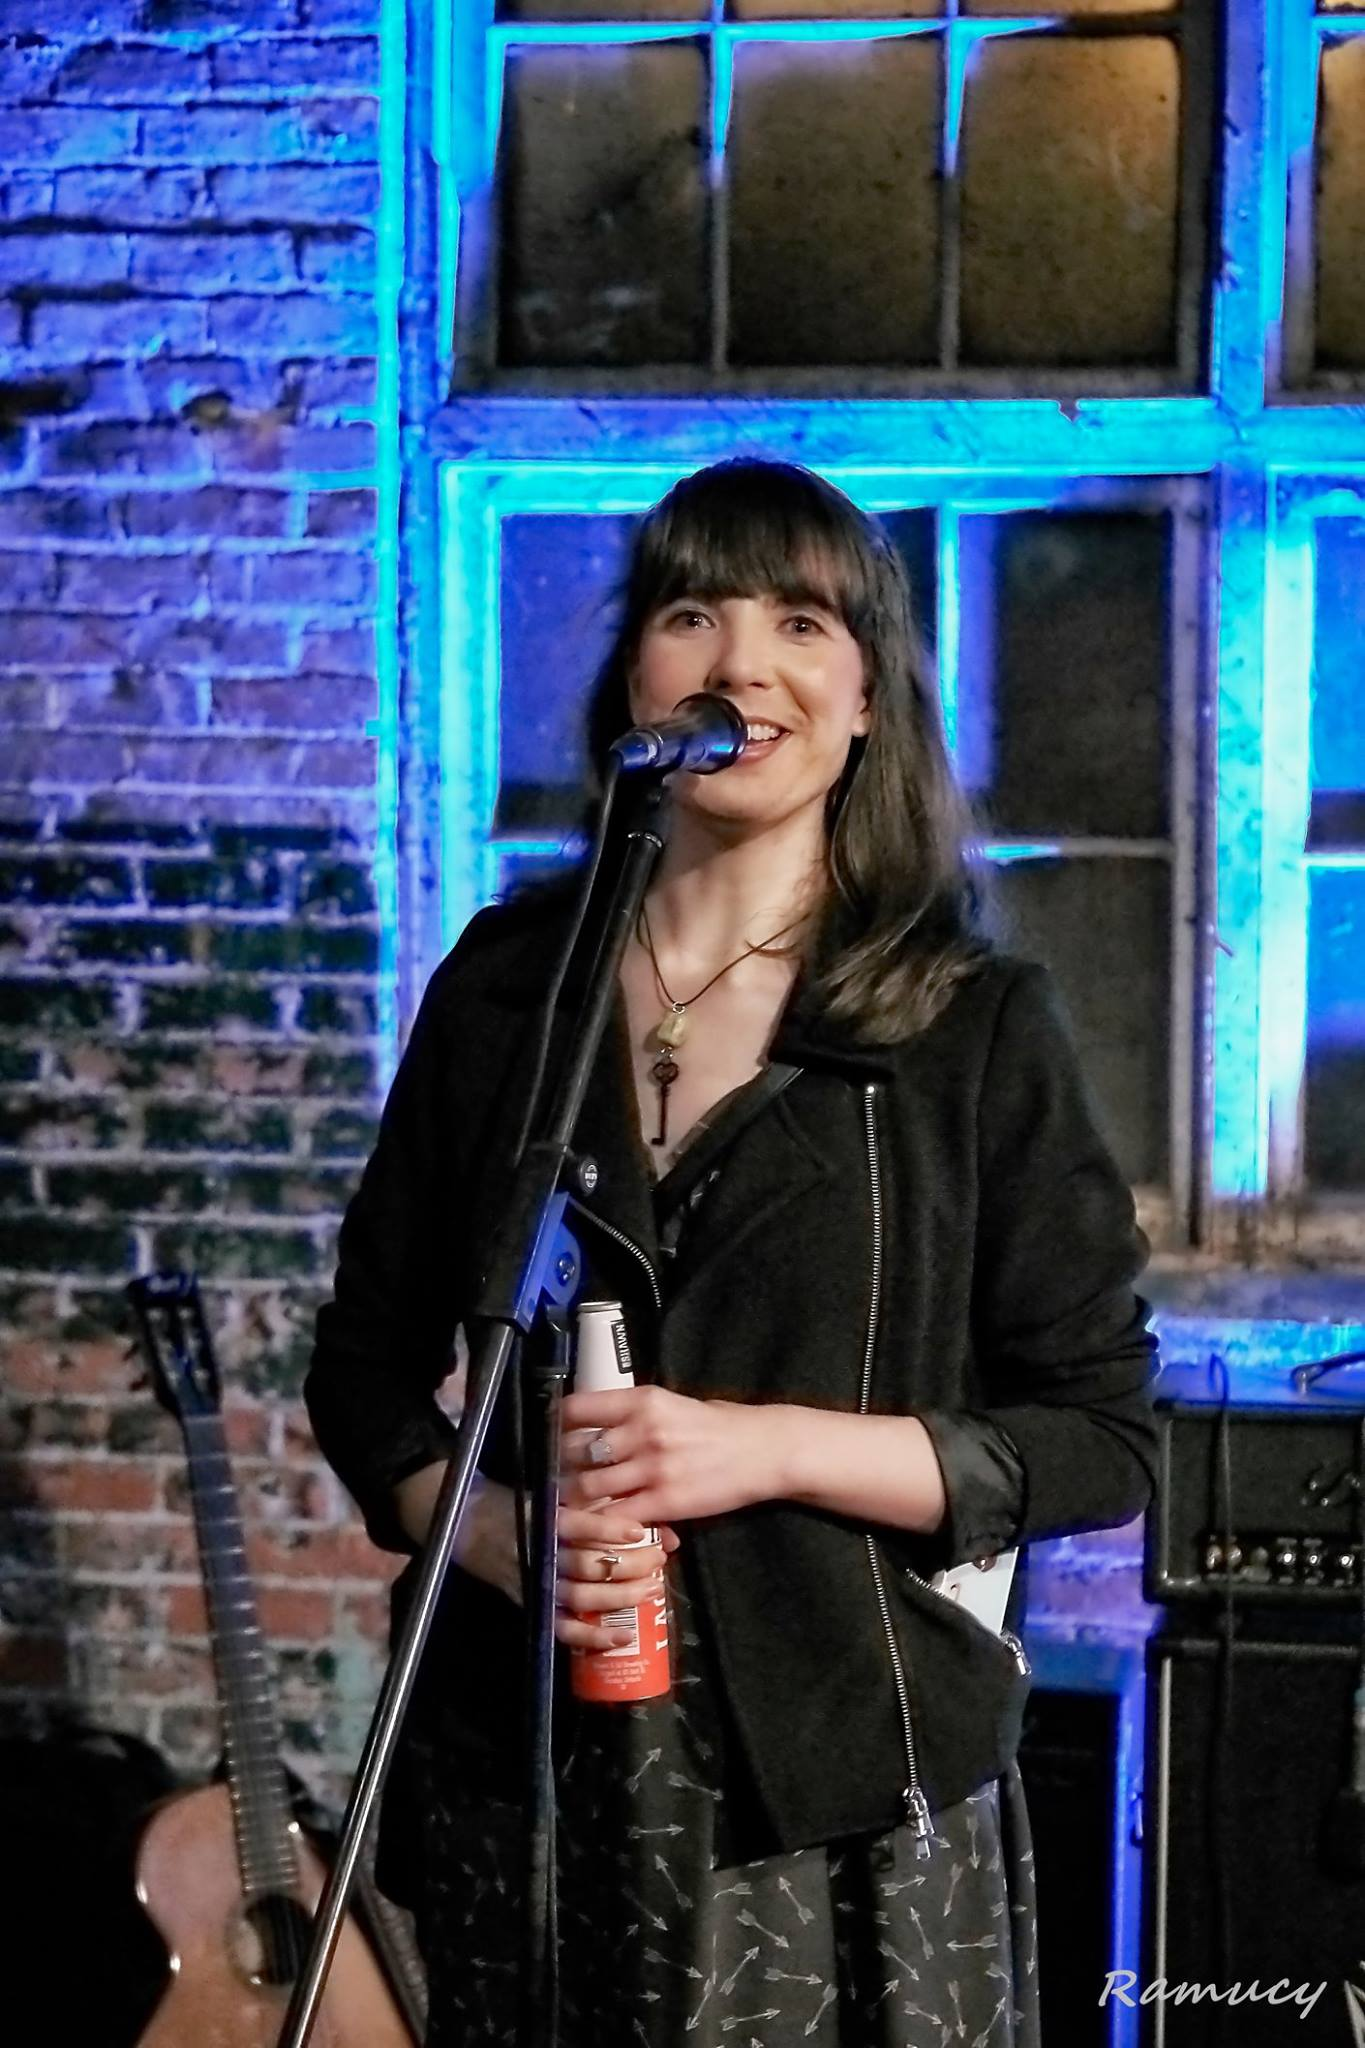 Hosting Live At The Mule Spinner. Photo by Don Gleeson.